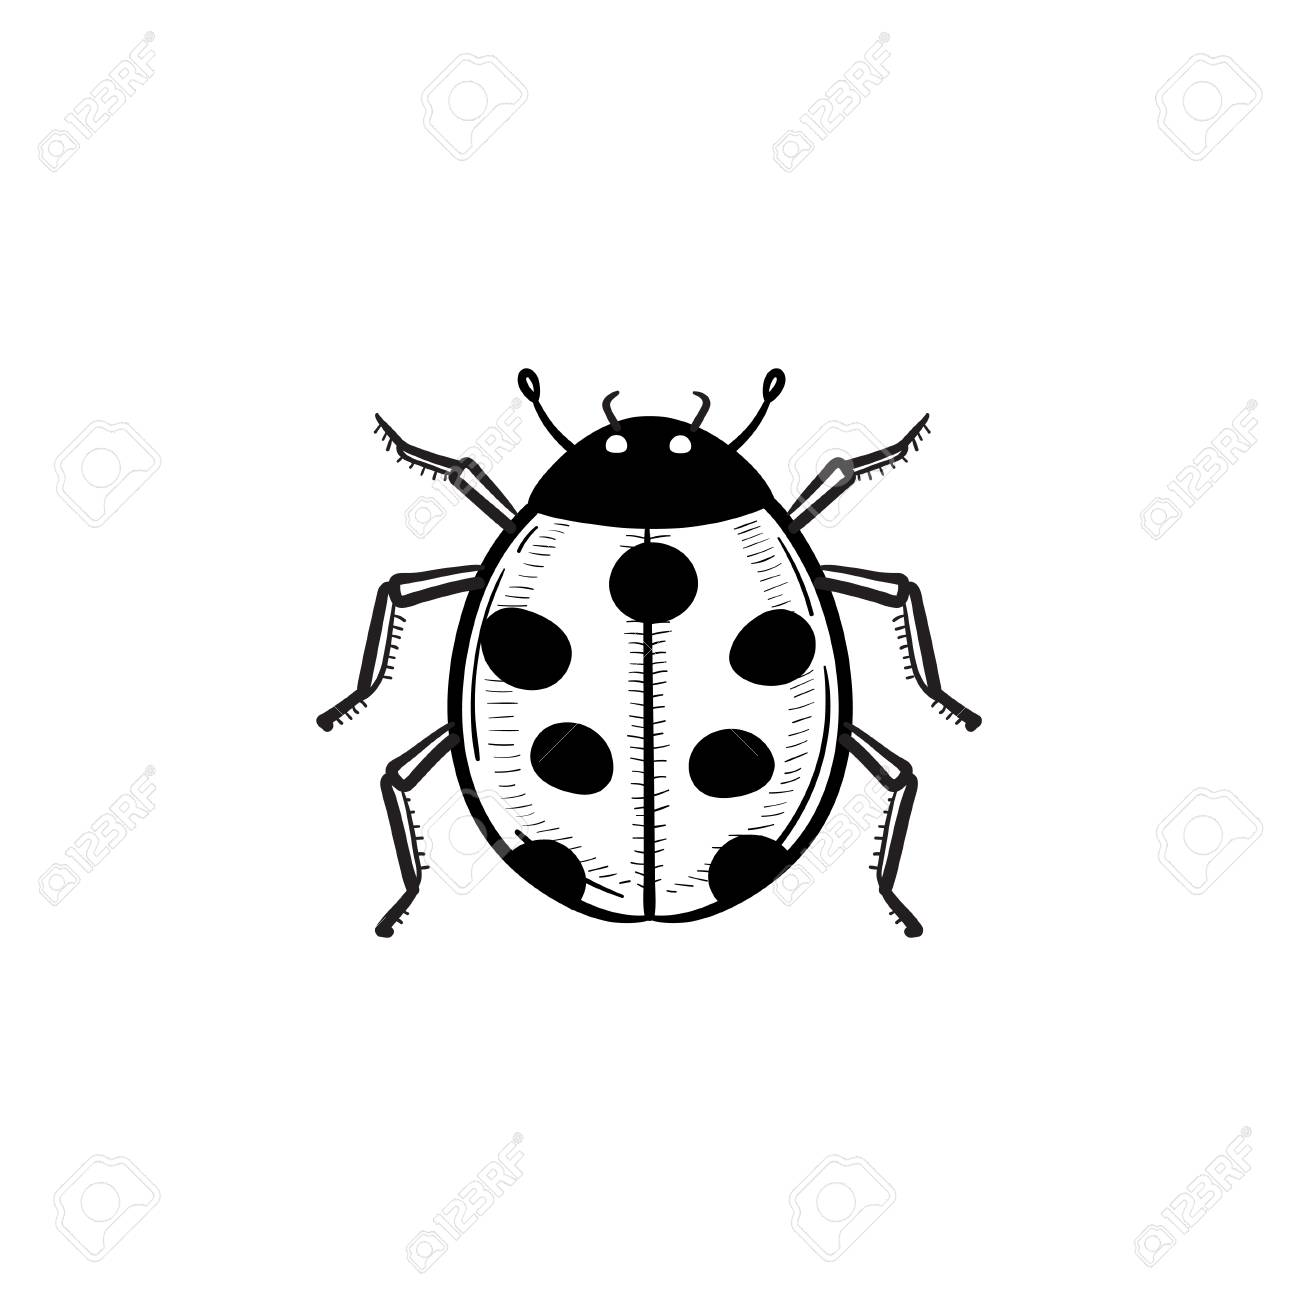 a vector hand drawn ladybug outline doodle icon. ladybug sketch.. royalty  free cliparts, vectors, and stock illustration. image 91375530.  123rf